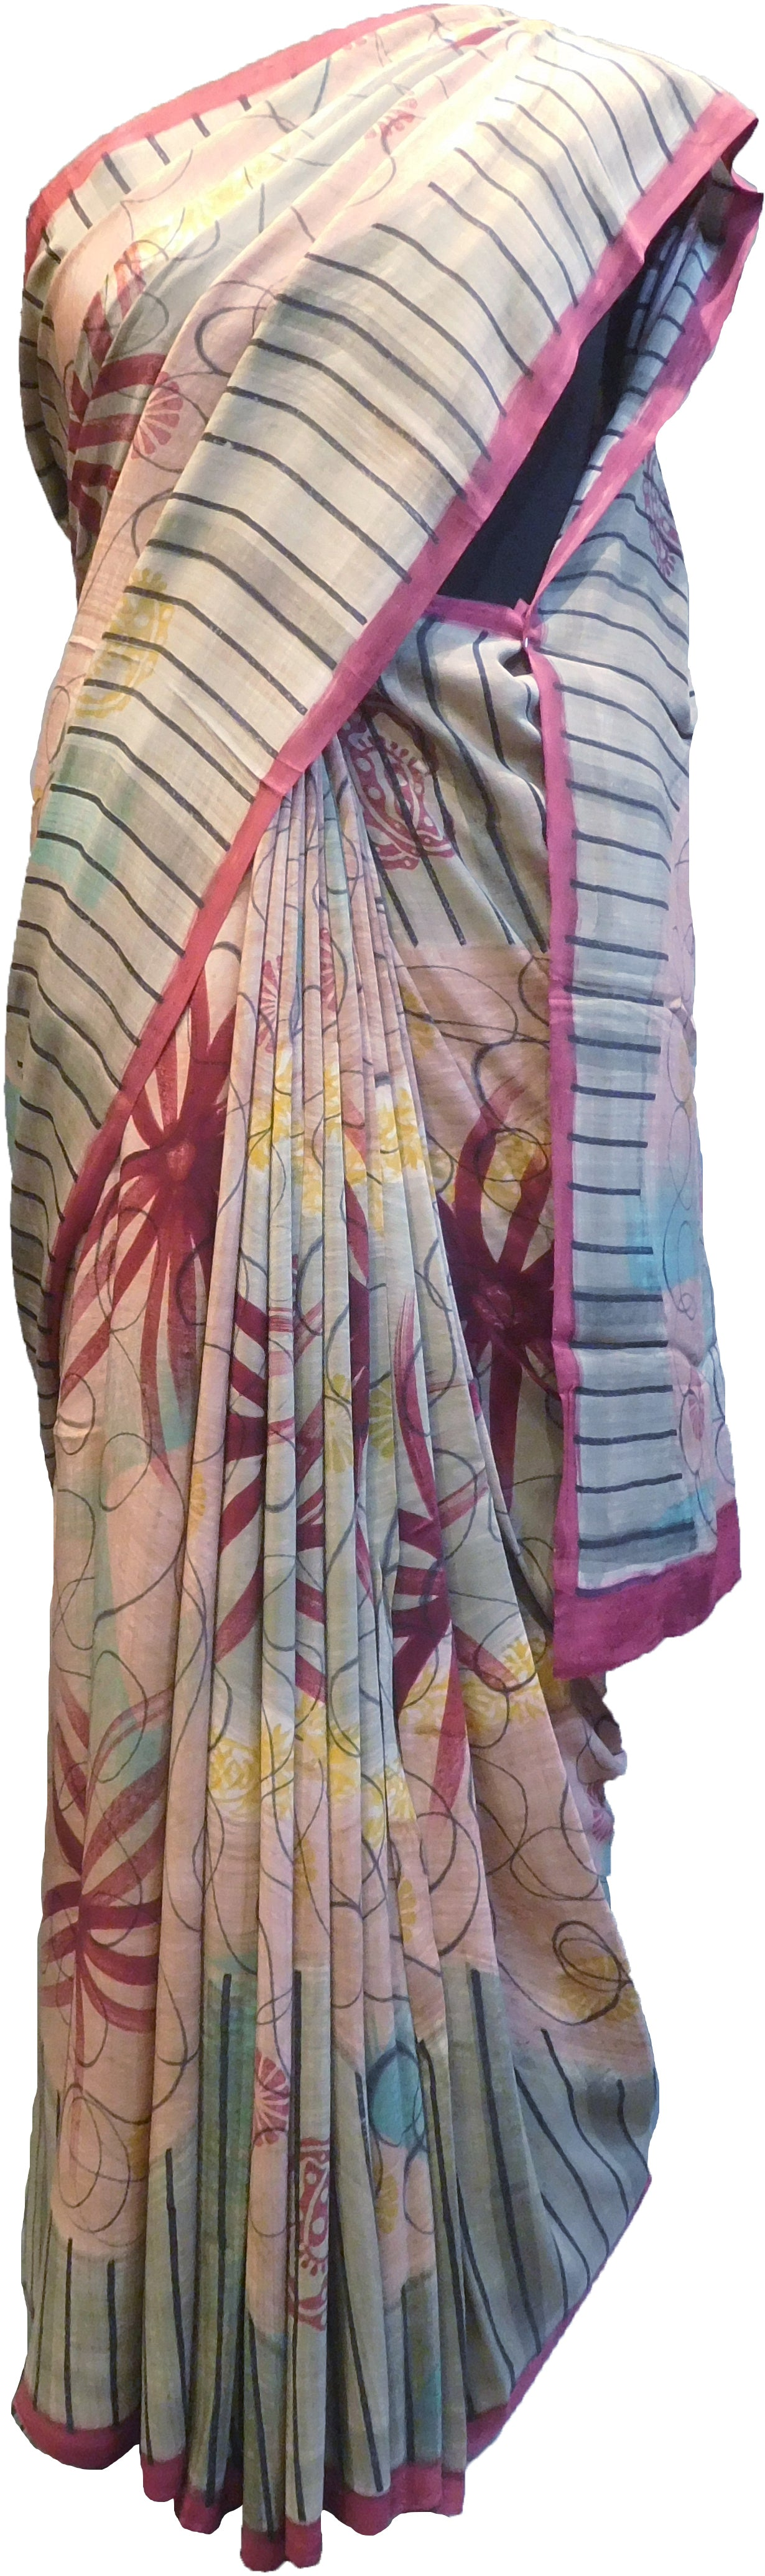 SMSAREE Multi Color Designer Wedding Partywear Pure Crepe Hand Brush Print Hand Embroidery Work Bridal Saree Sari With Blouse Piece RP372